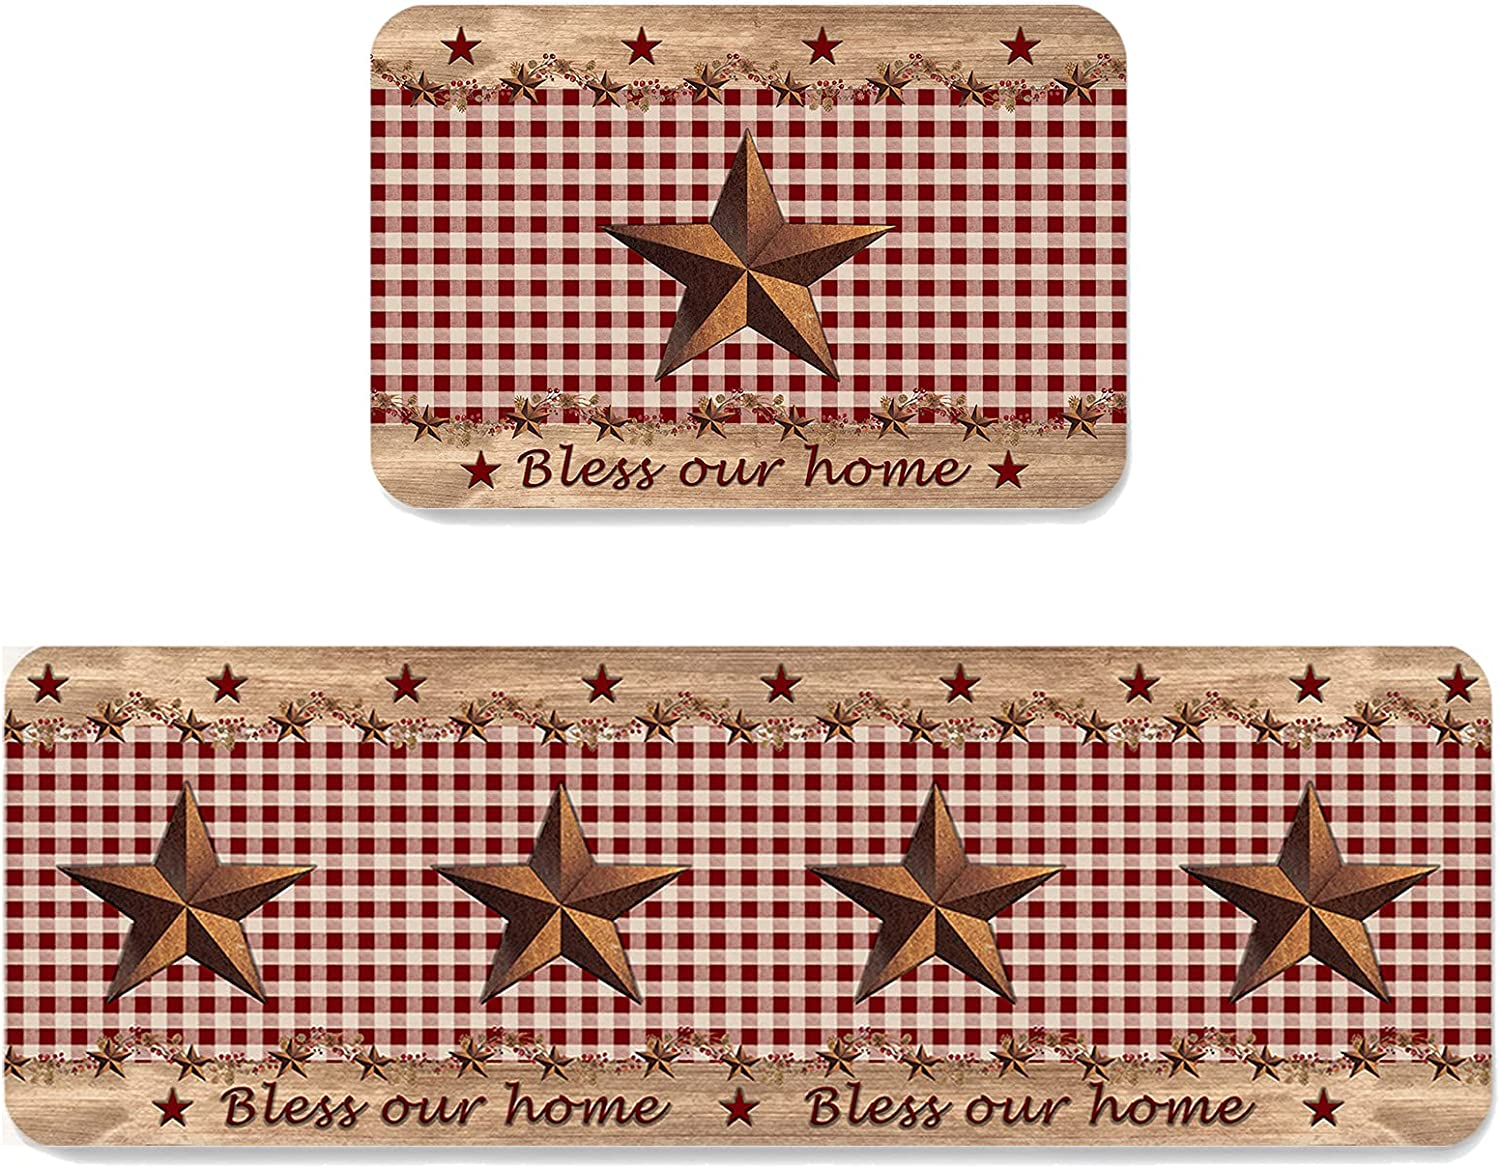 Western Texas Limited price sale Star Bless Popularity our Home Barn Plaid Buffalo Rustic Red